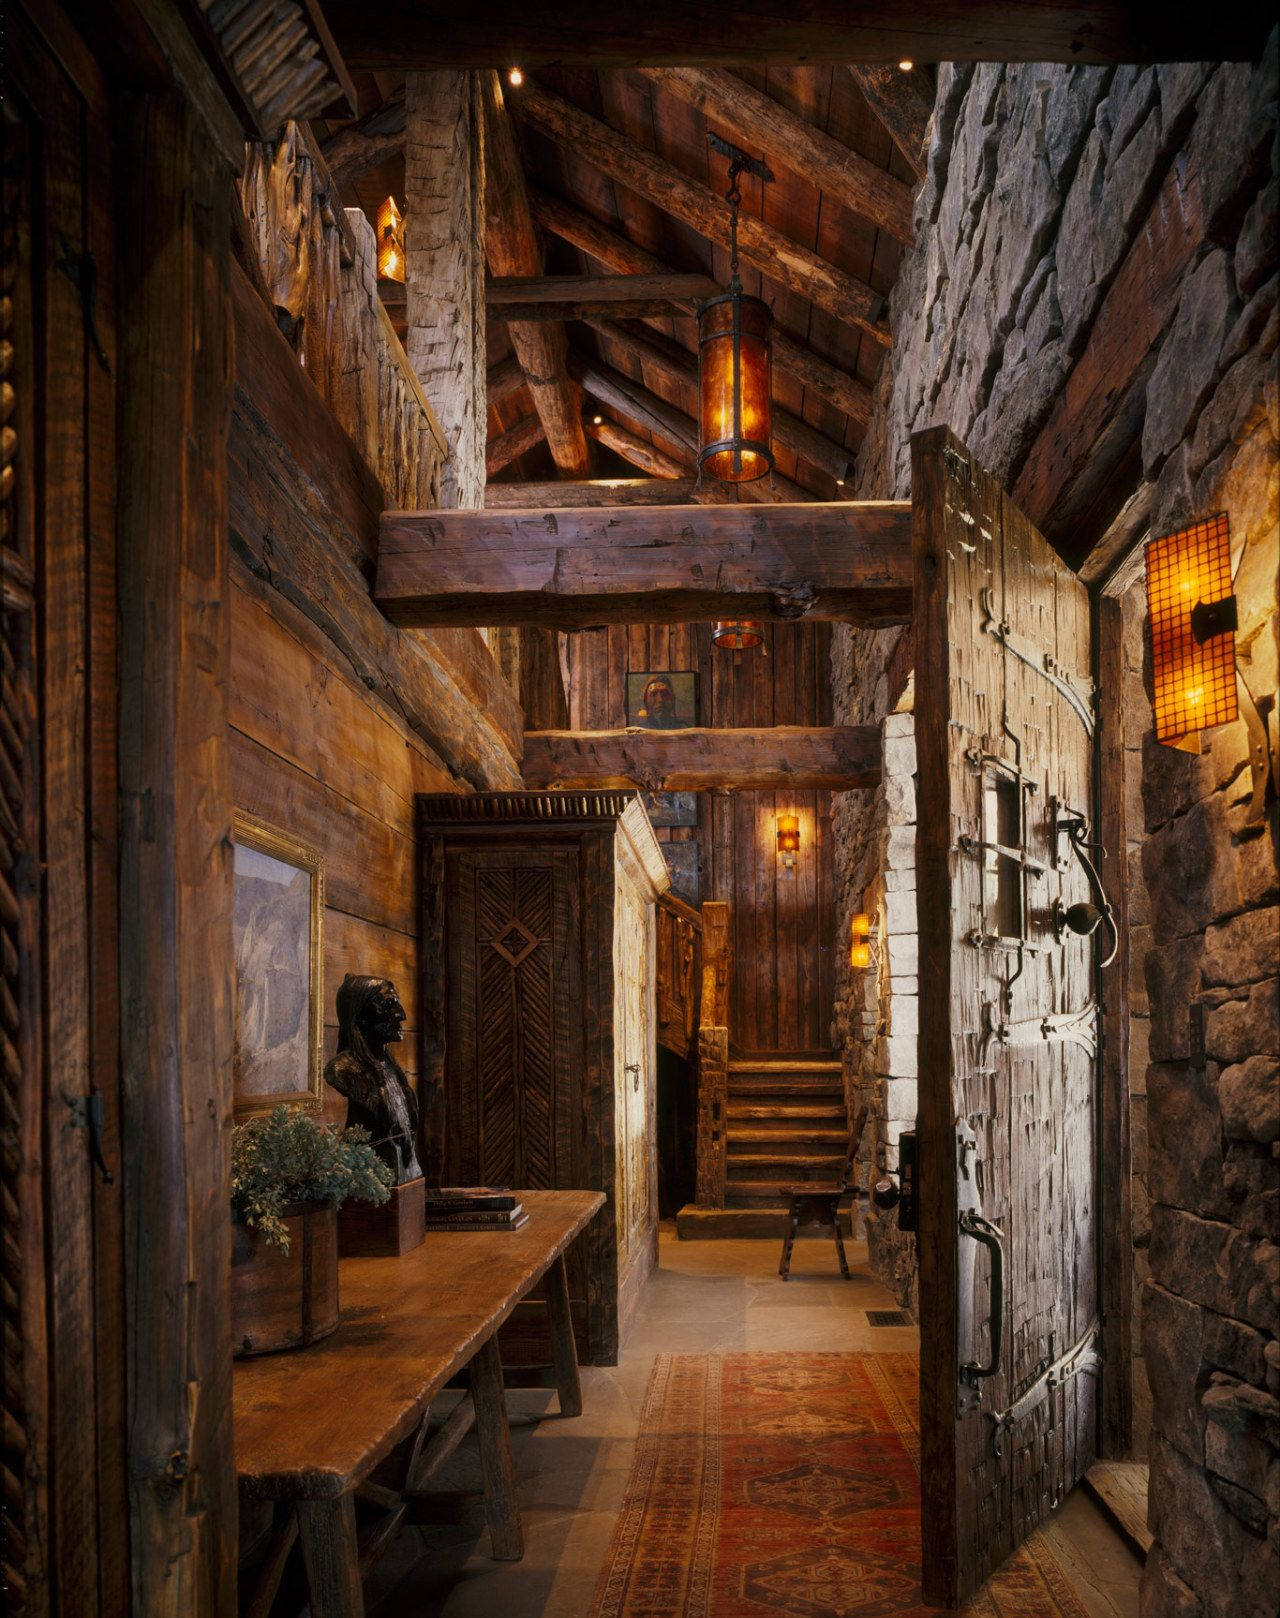 Hearth And Timber Log Cabin Entrance Reclaimed Wood Beams Large Rustic Home Design Rustic House Rustic Entry